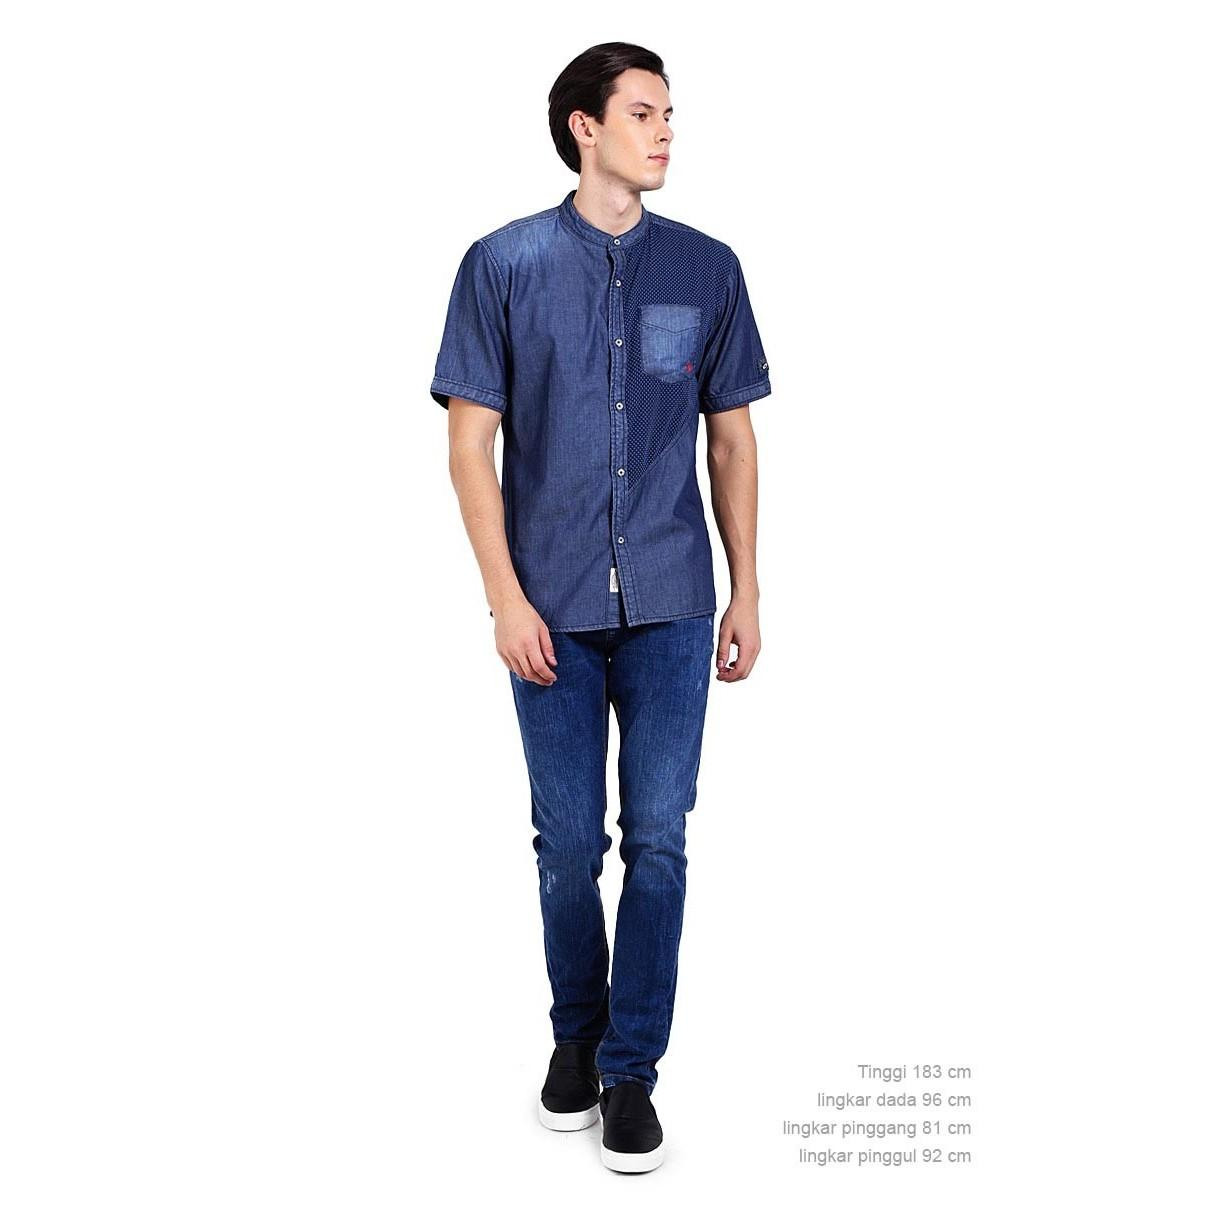 Bushido Jeans BD17SH020RB Short Sleeve Shirt Navy